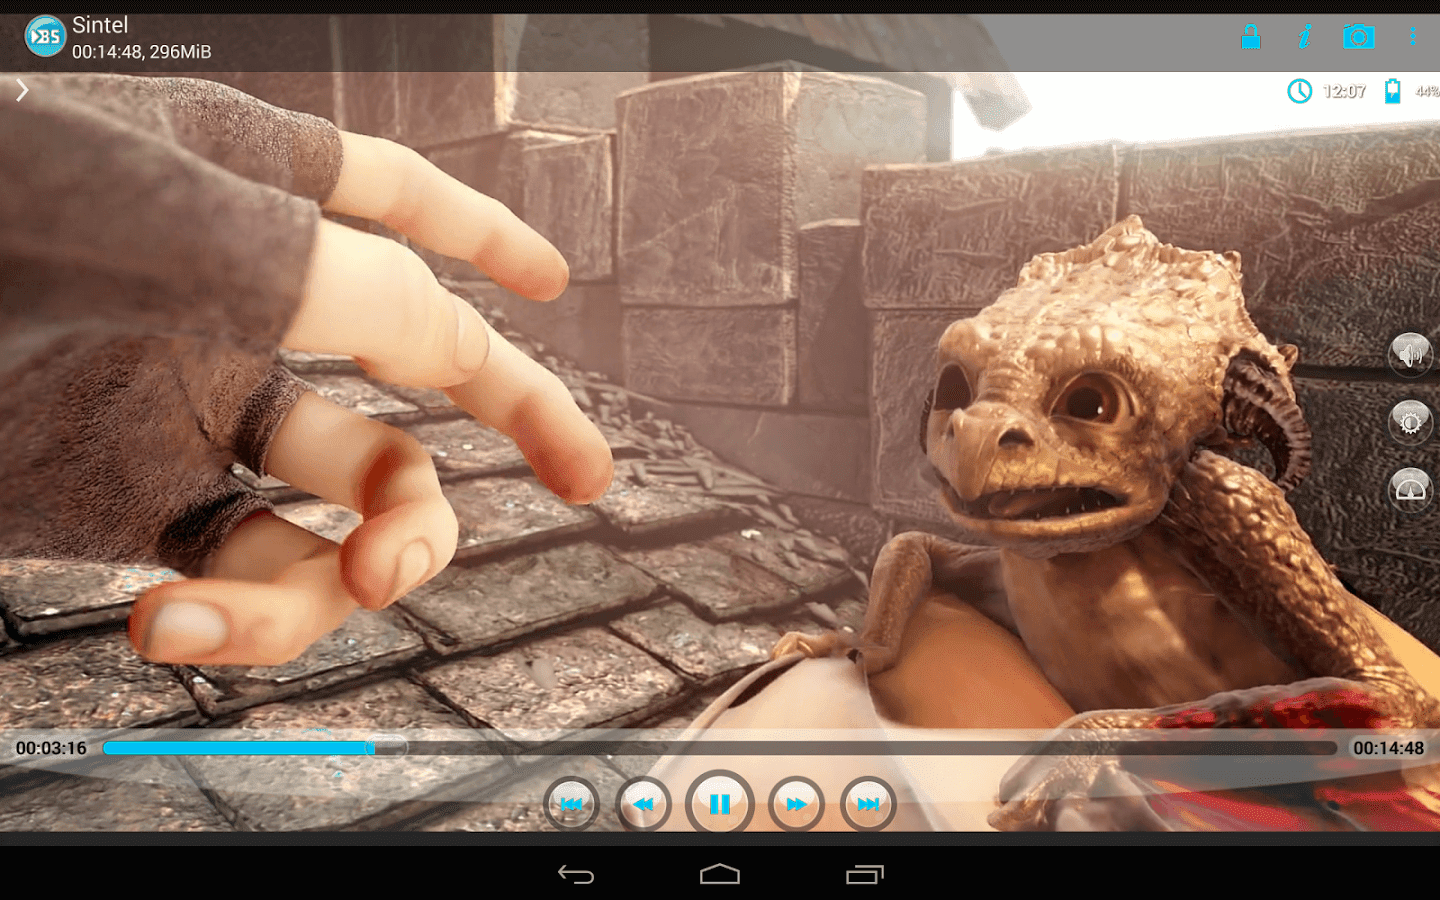 BSPlayer v1.31.196 build 2487 Paid APK is Here!